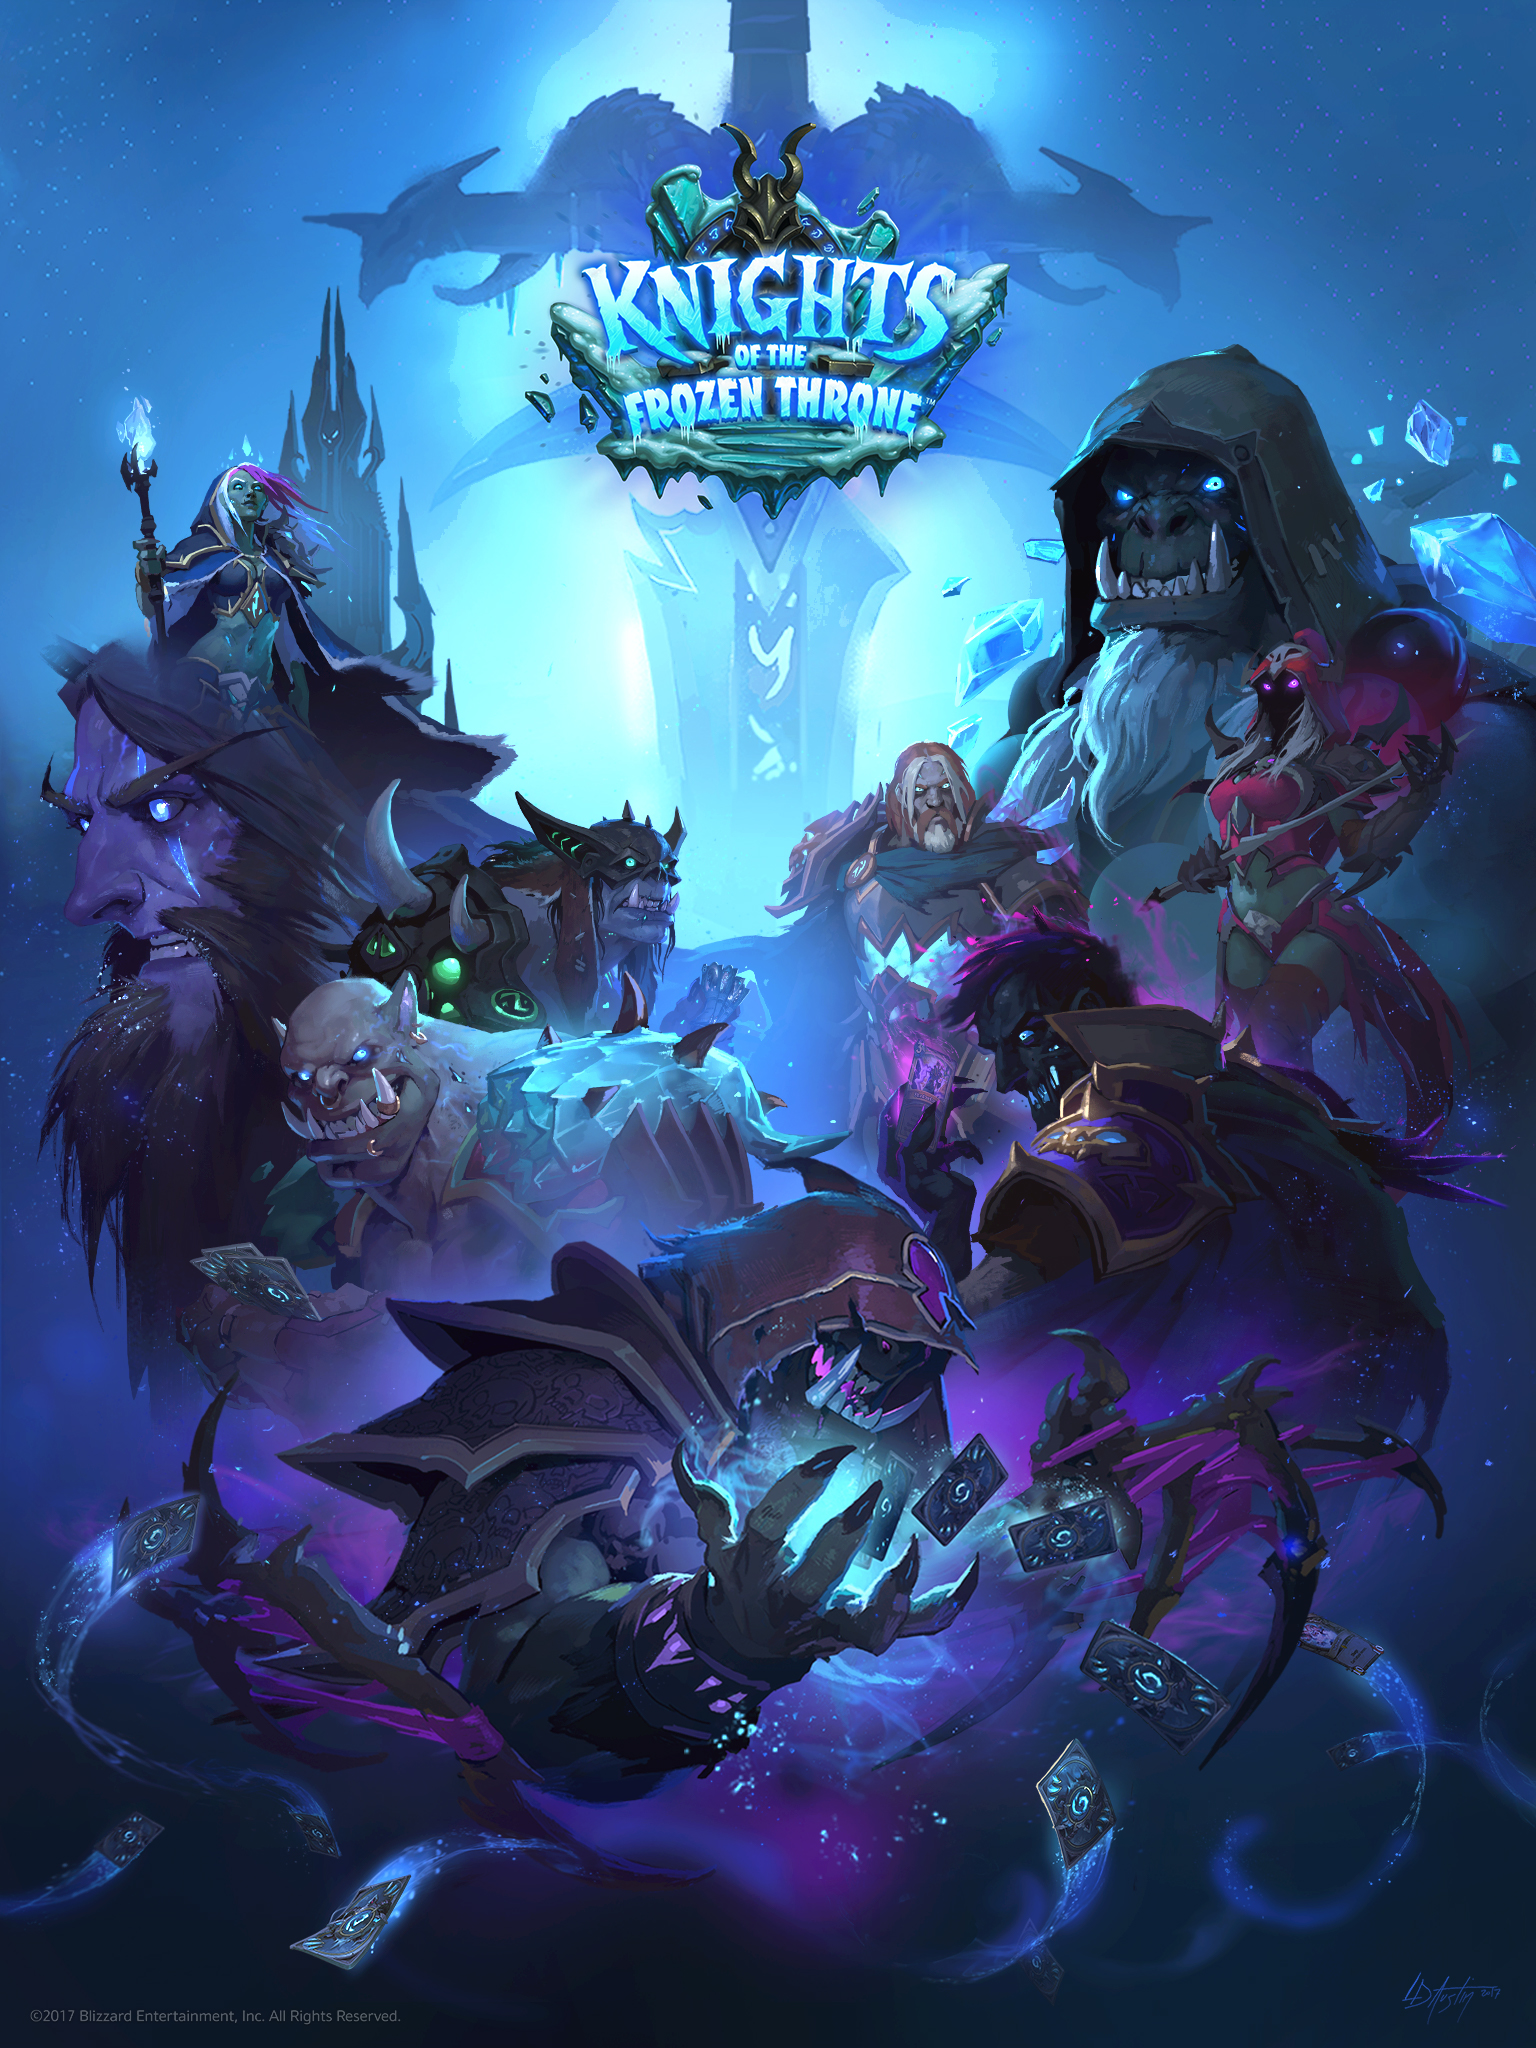 Who Is The Artist For The Knights Of The Frozen Throne Death